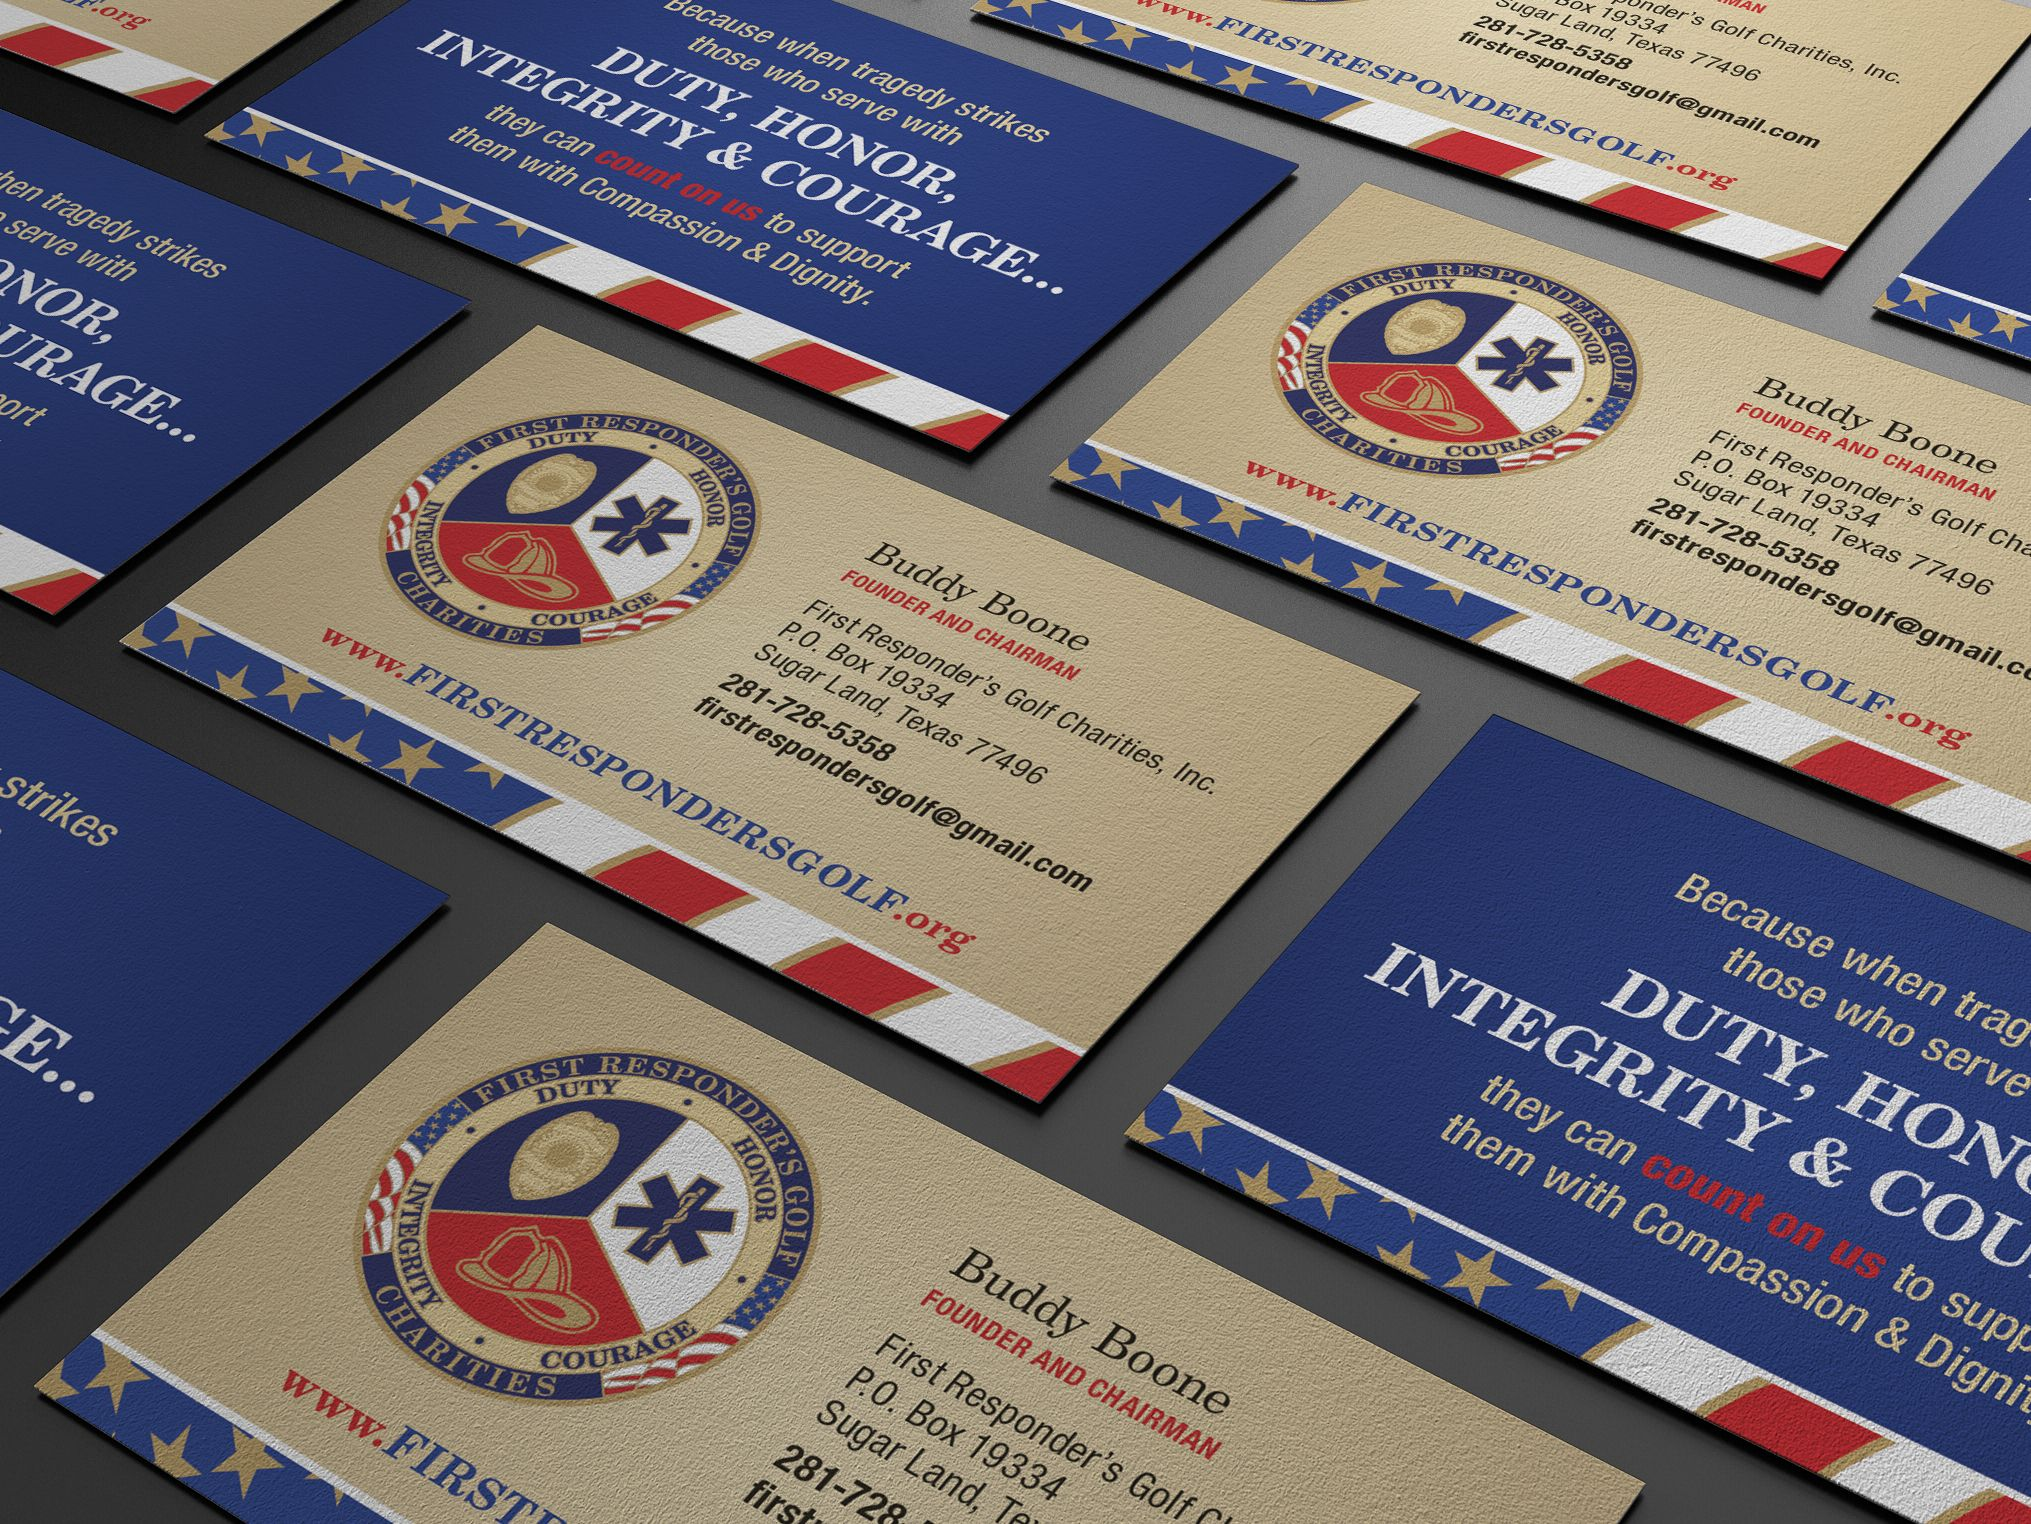 First responders business card designed printed by alphagraphics first responders business card designed printed by alphagraphics sugar land colourmoves